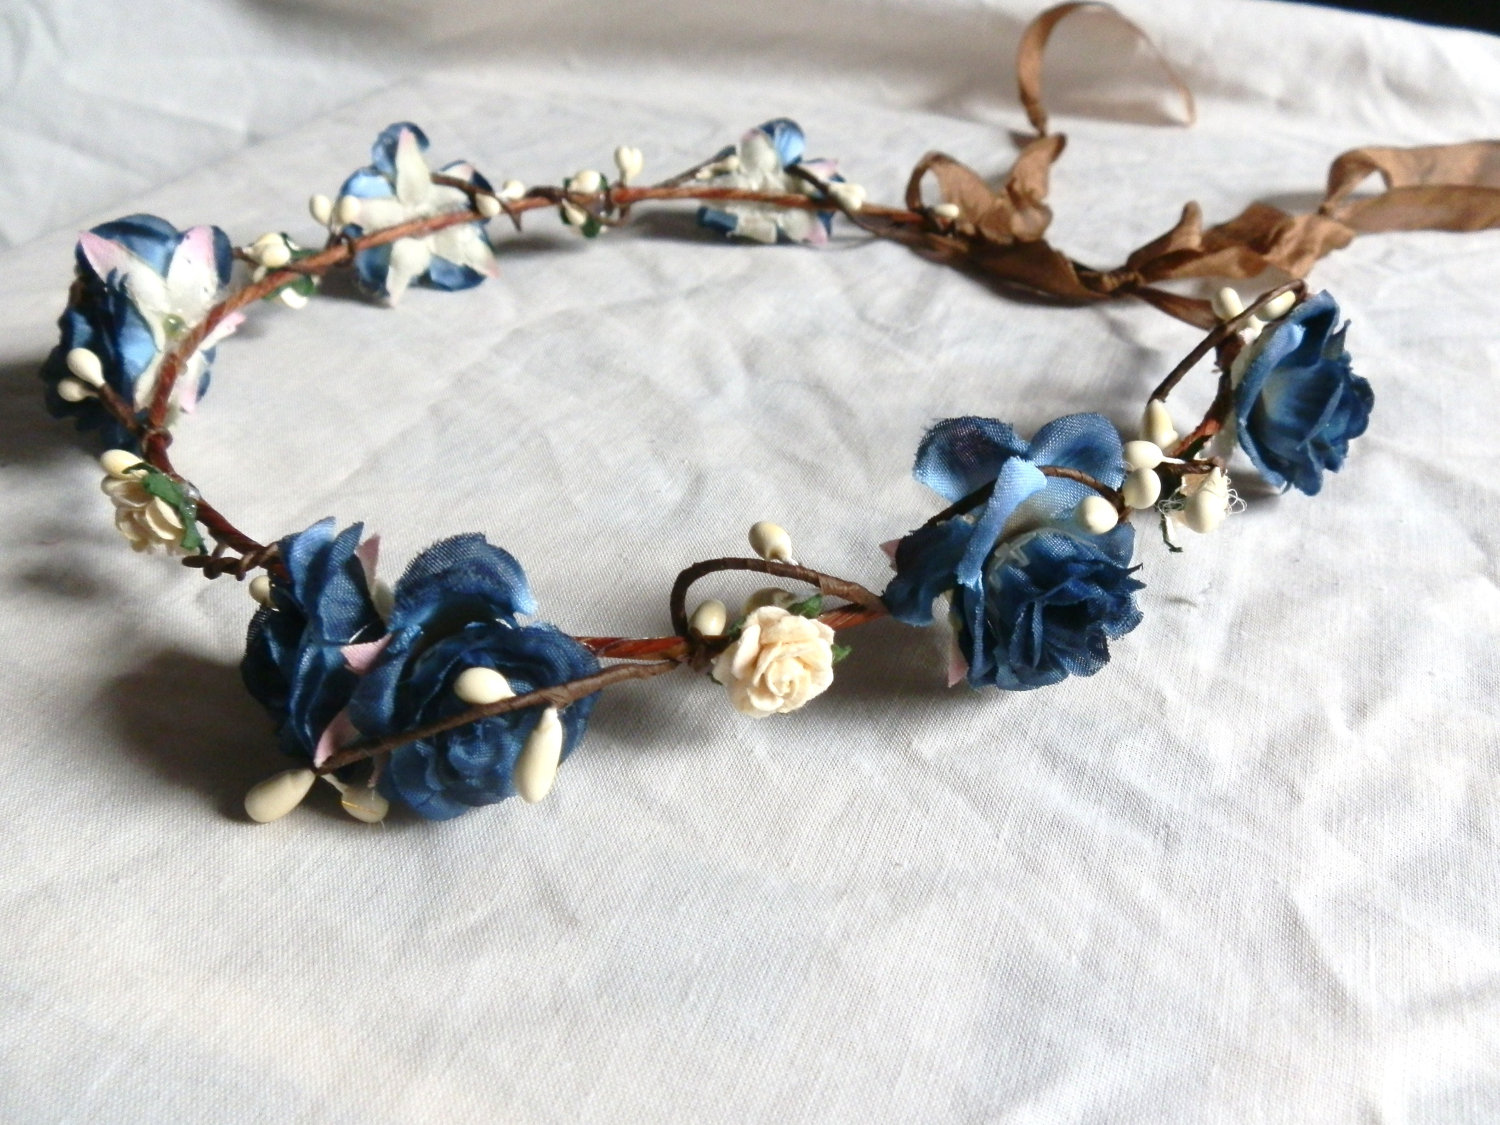 Flower floral crown hair wreath blue and white rose wedding flower floral crown hair wreath blue and white rose wedding headpiece headband vintage inspired rose crown izmirmasajfo